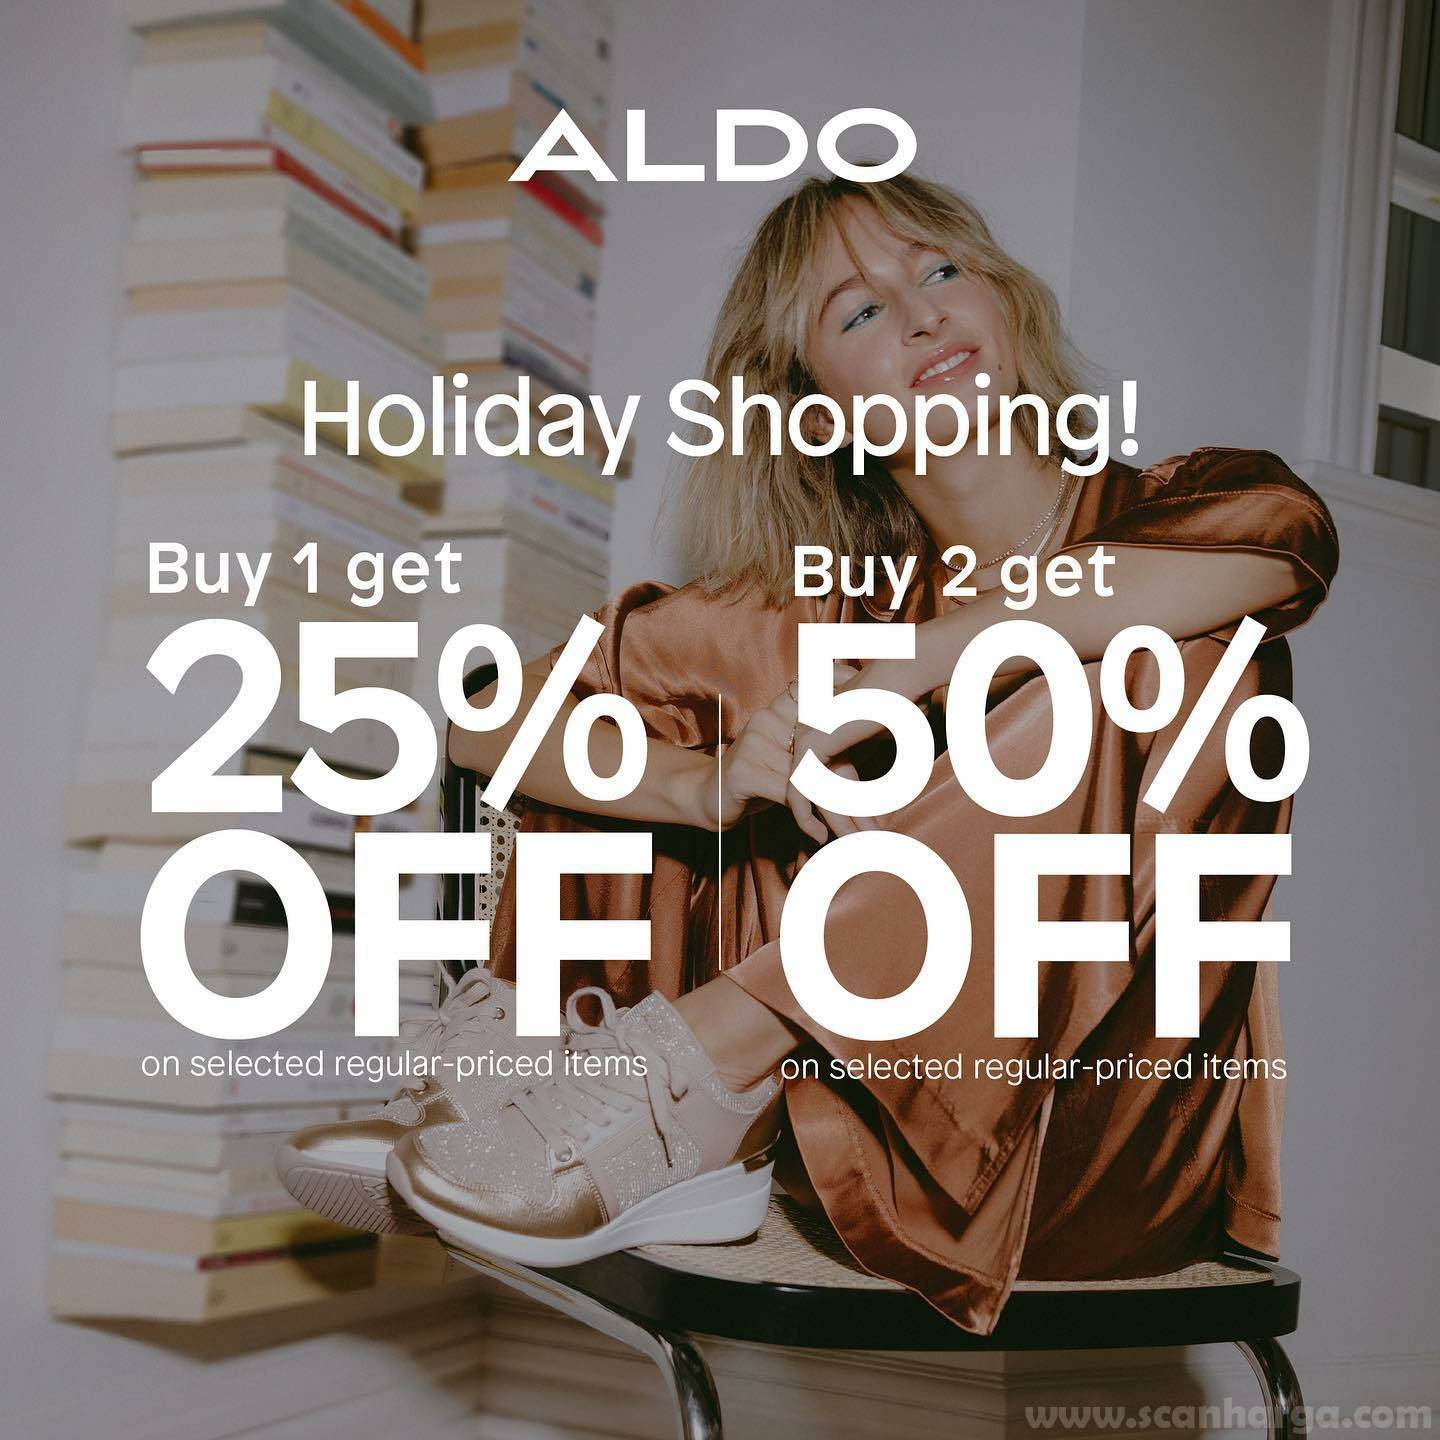 Promo ALDO Shoes Holiday Shopping – Buy 1 Get 25% Off or Buy 2 Get 50% Off*